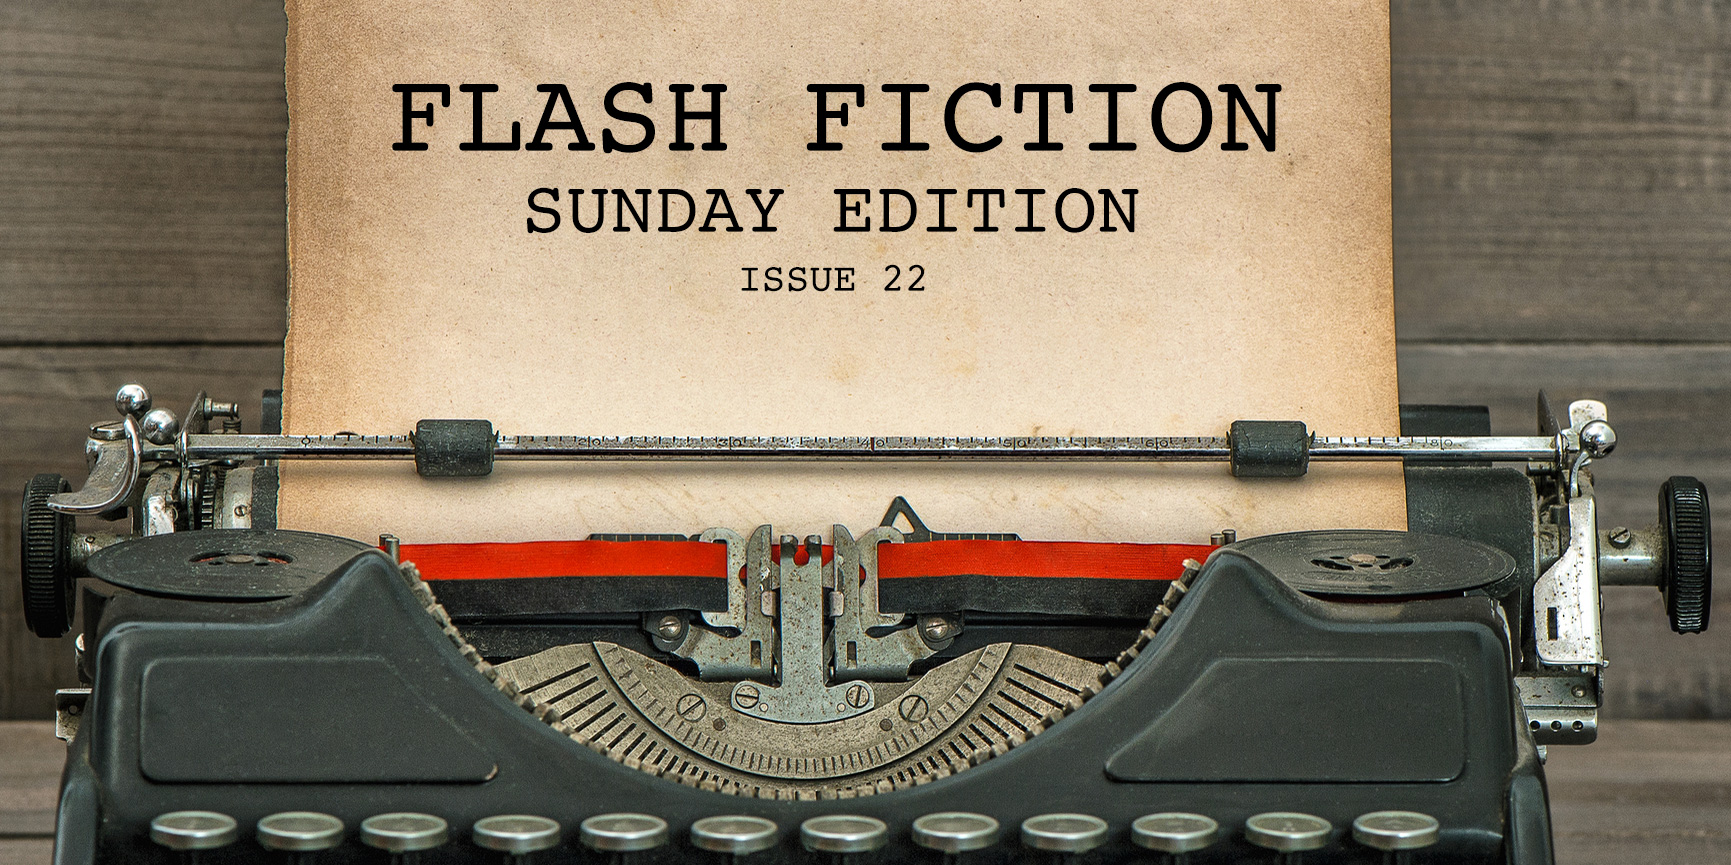 Flash Fiction Sunday Edition - Issue 22